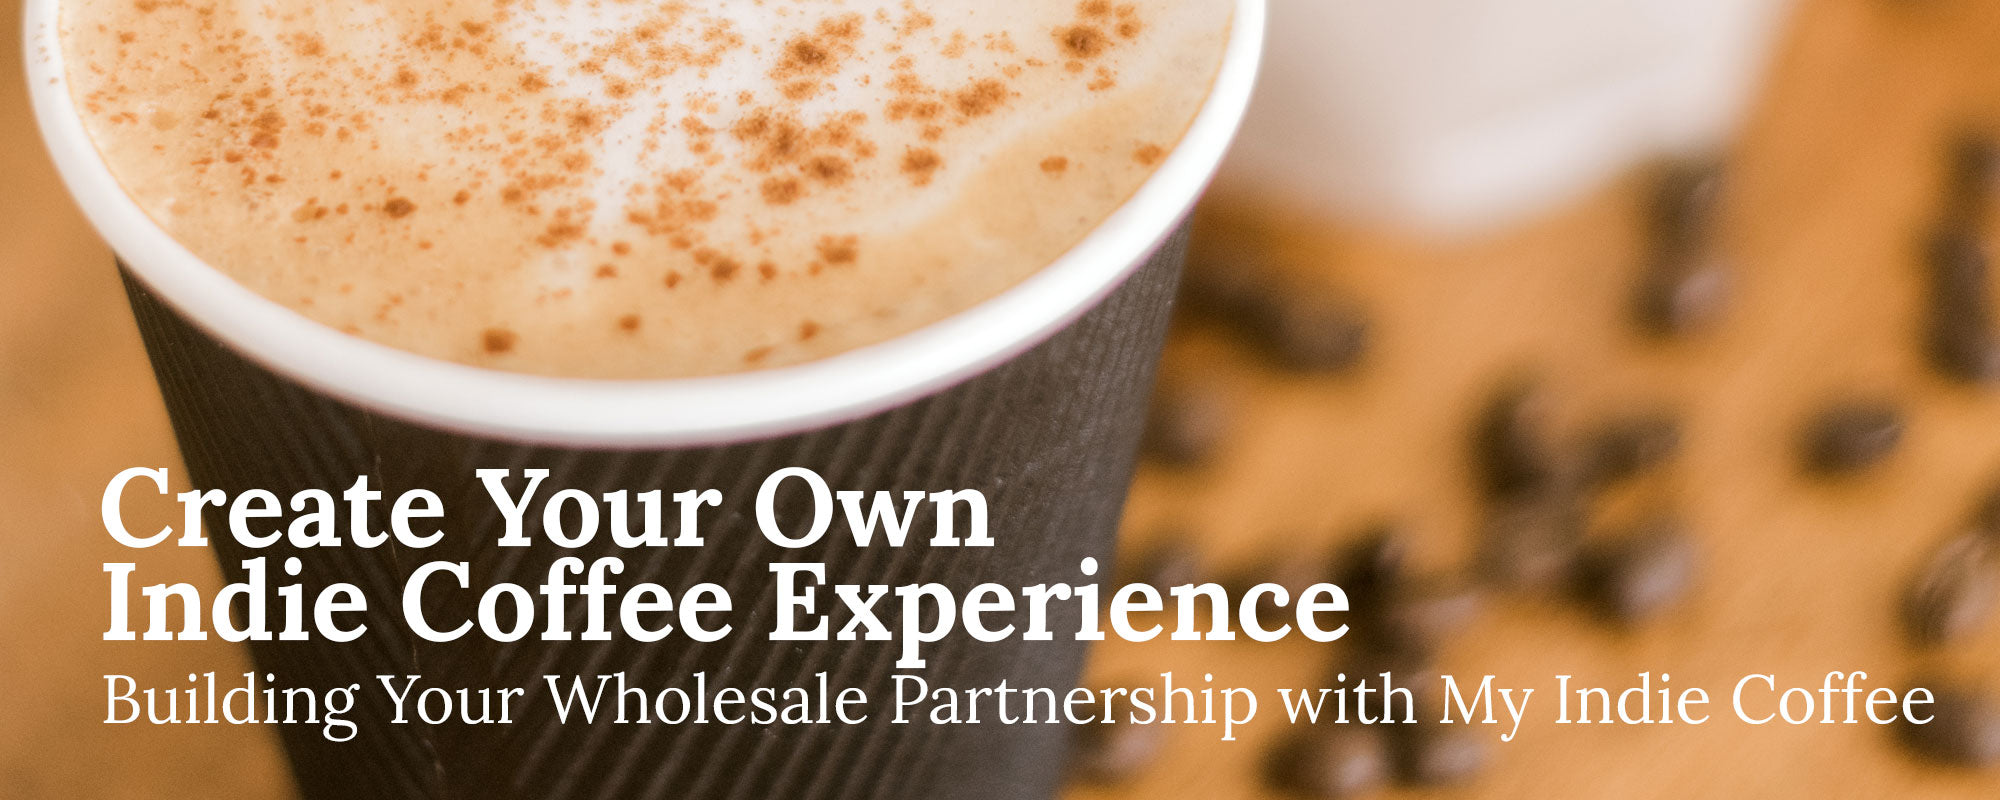 Create Your Own Indie Coffee Experience - Building Your Wholesale Partnership with My Indie Coffee